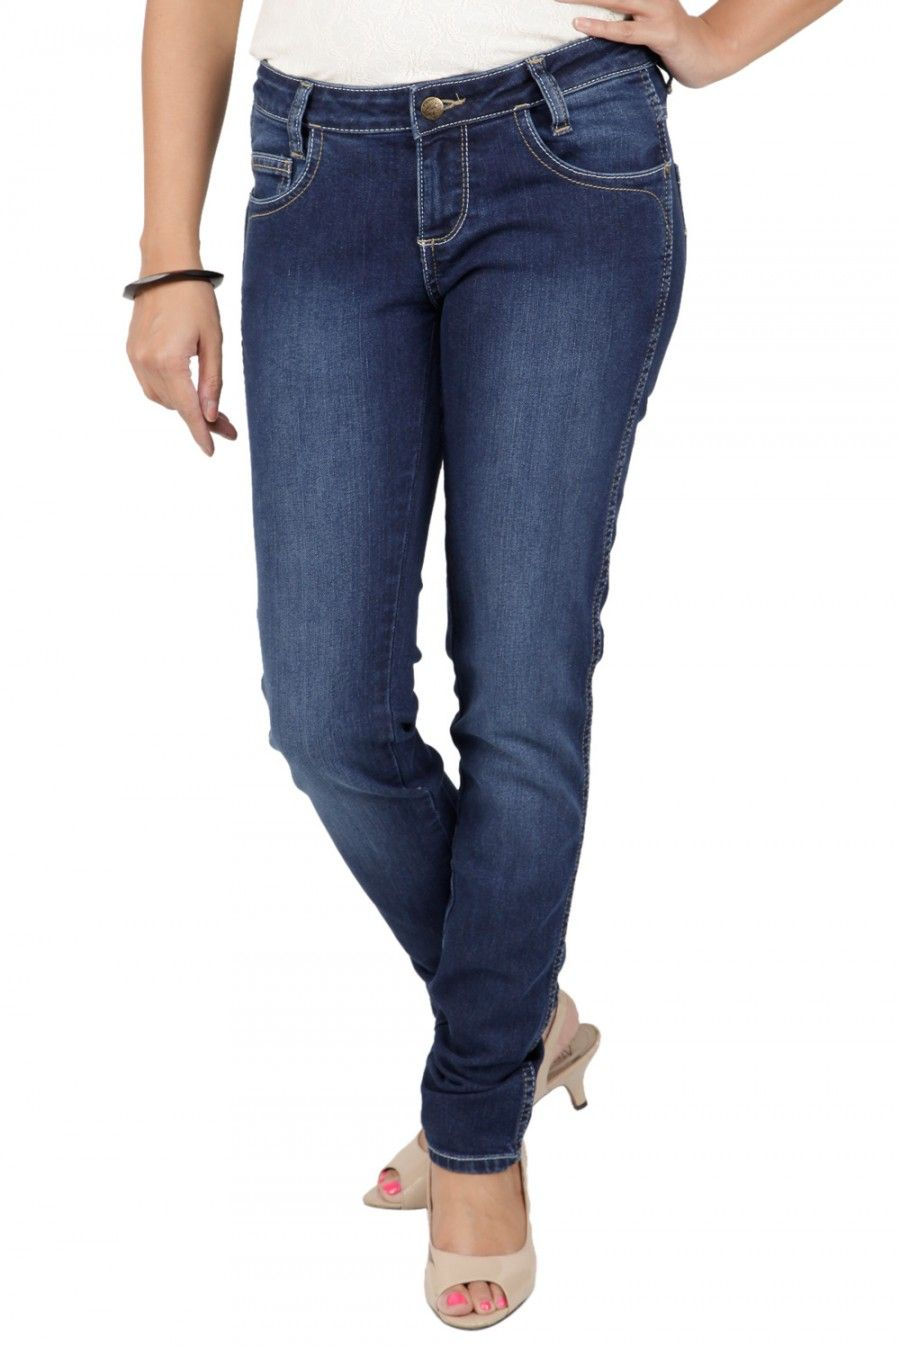 JAG FOX Colour      BlueFor      WomenMaterial      DenimBrands      WranglerDepartments      ApparelsFit      Slim FitCategory      JeansDiscount      More than 10% , Sale [Rs7,373.00]